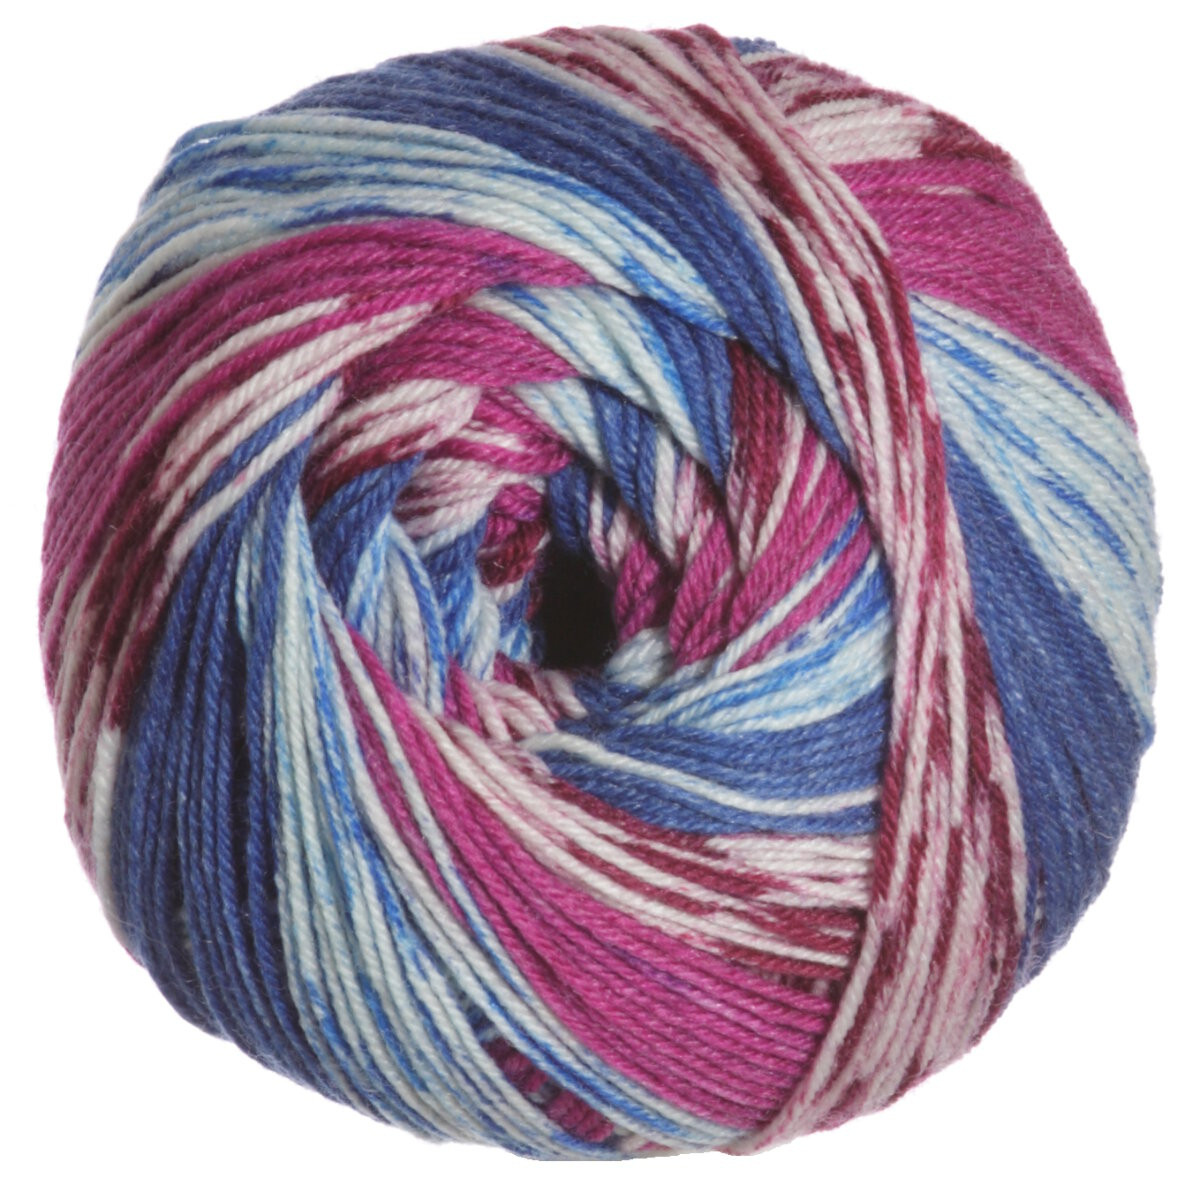 Cascade Heritage Prints Yarn 08 Cotton Candy at Jimmy